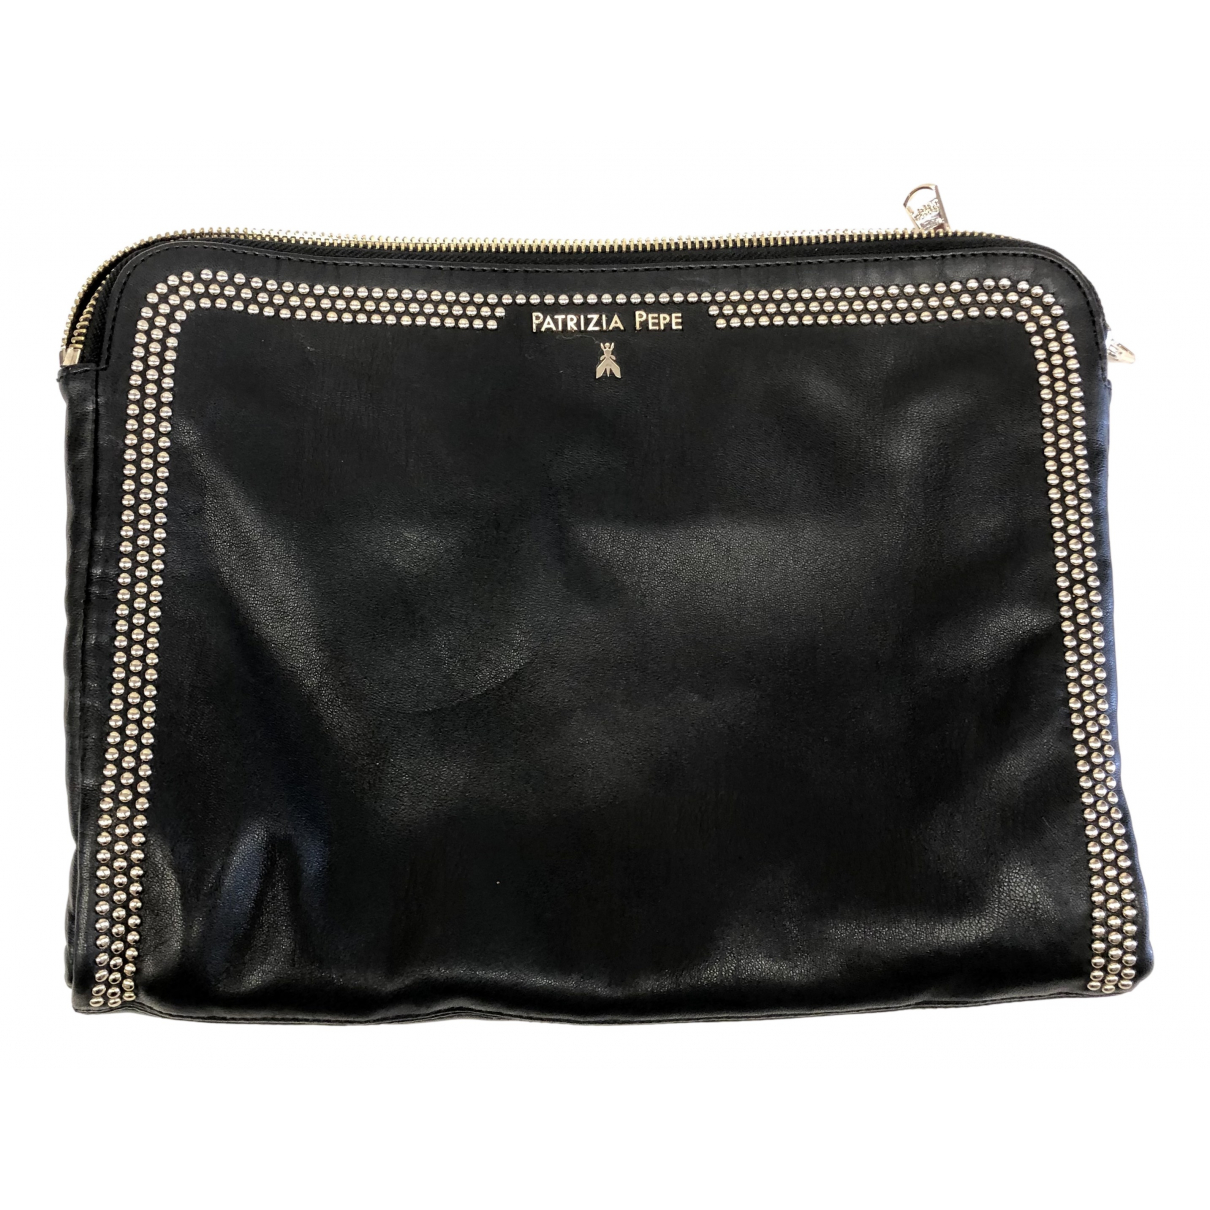 Patrizia Pepe N Black Leather Clutch bag for Women N